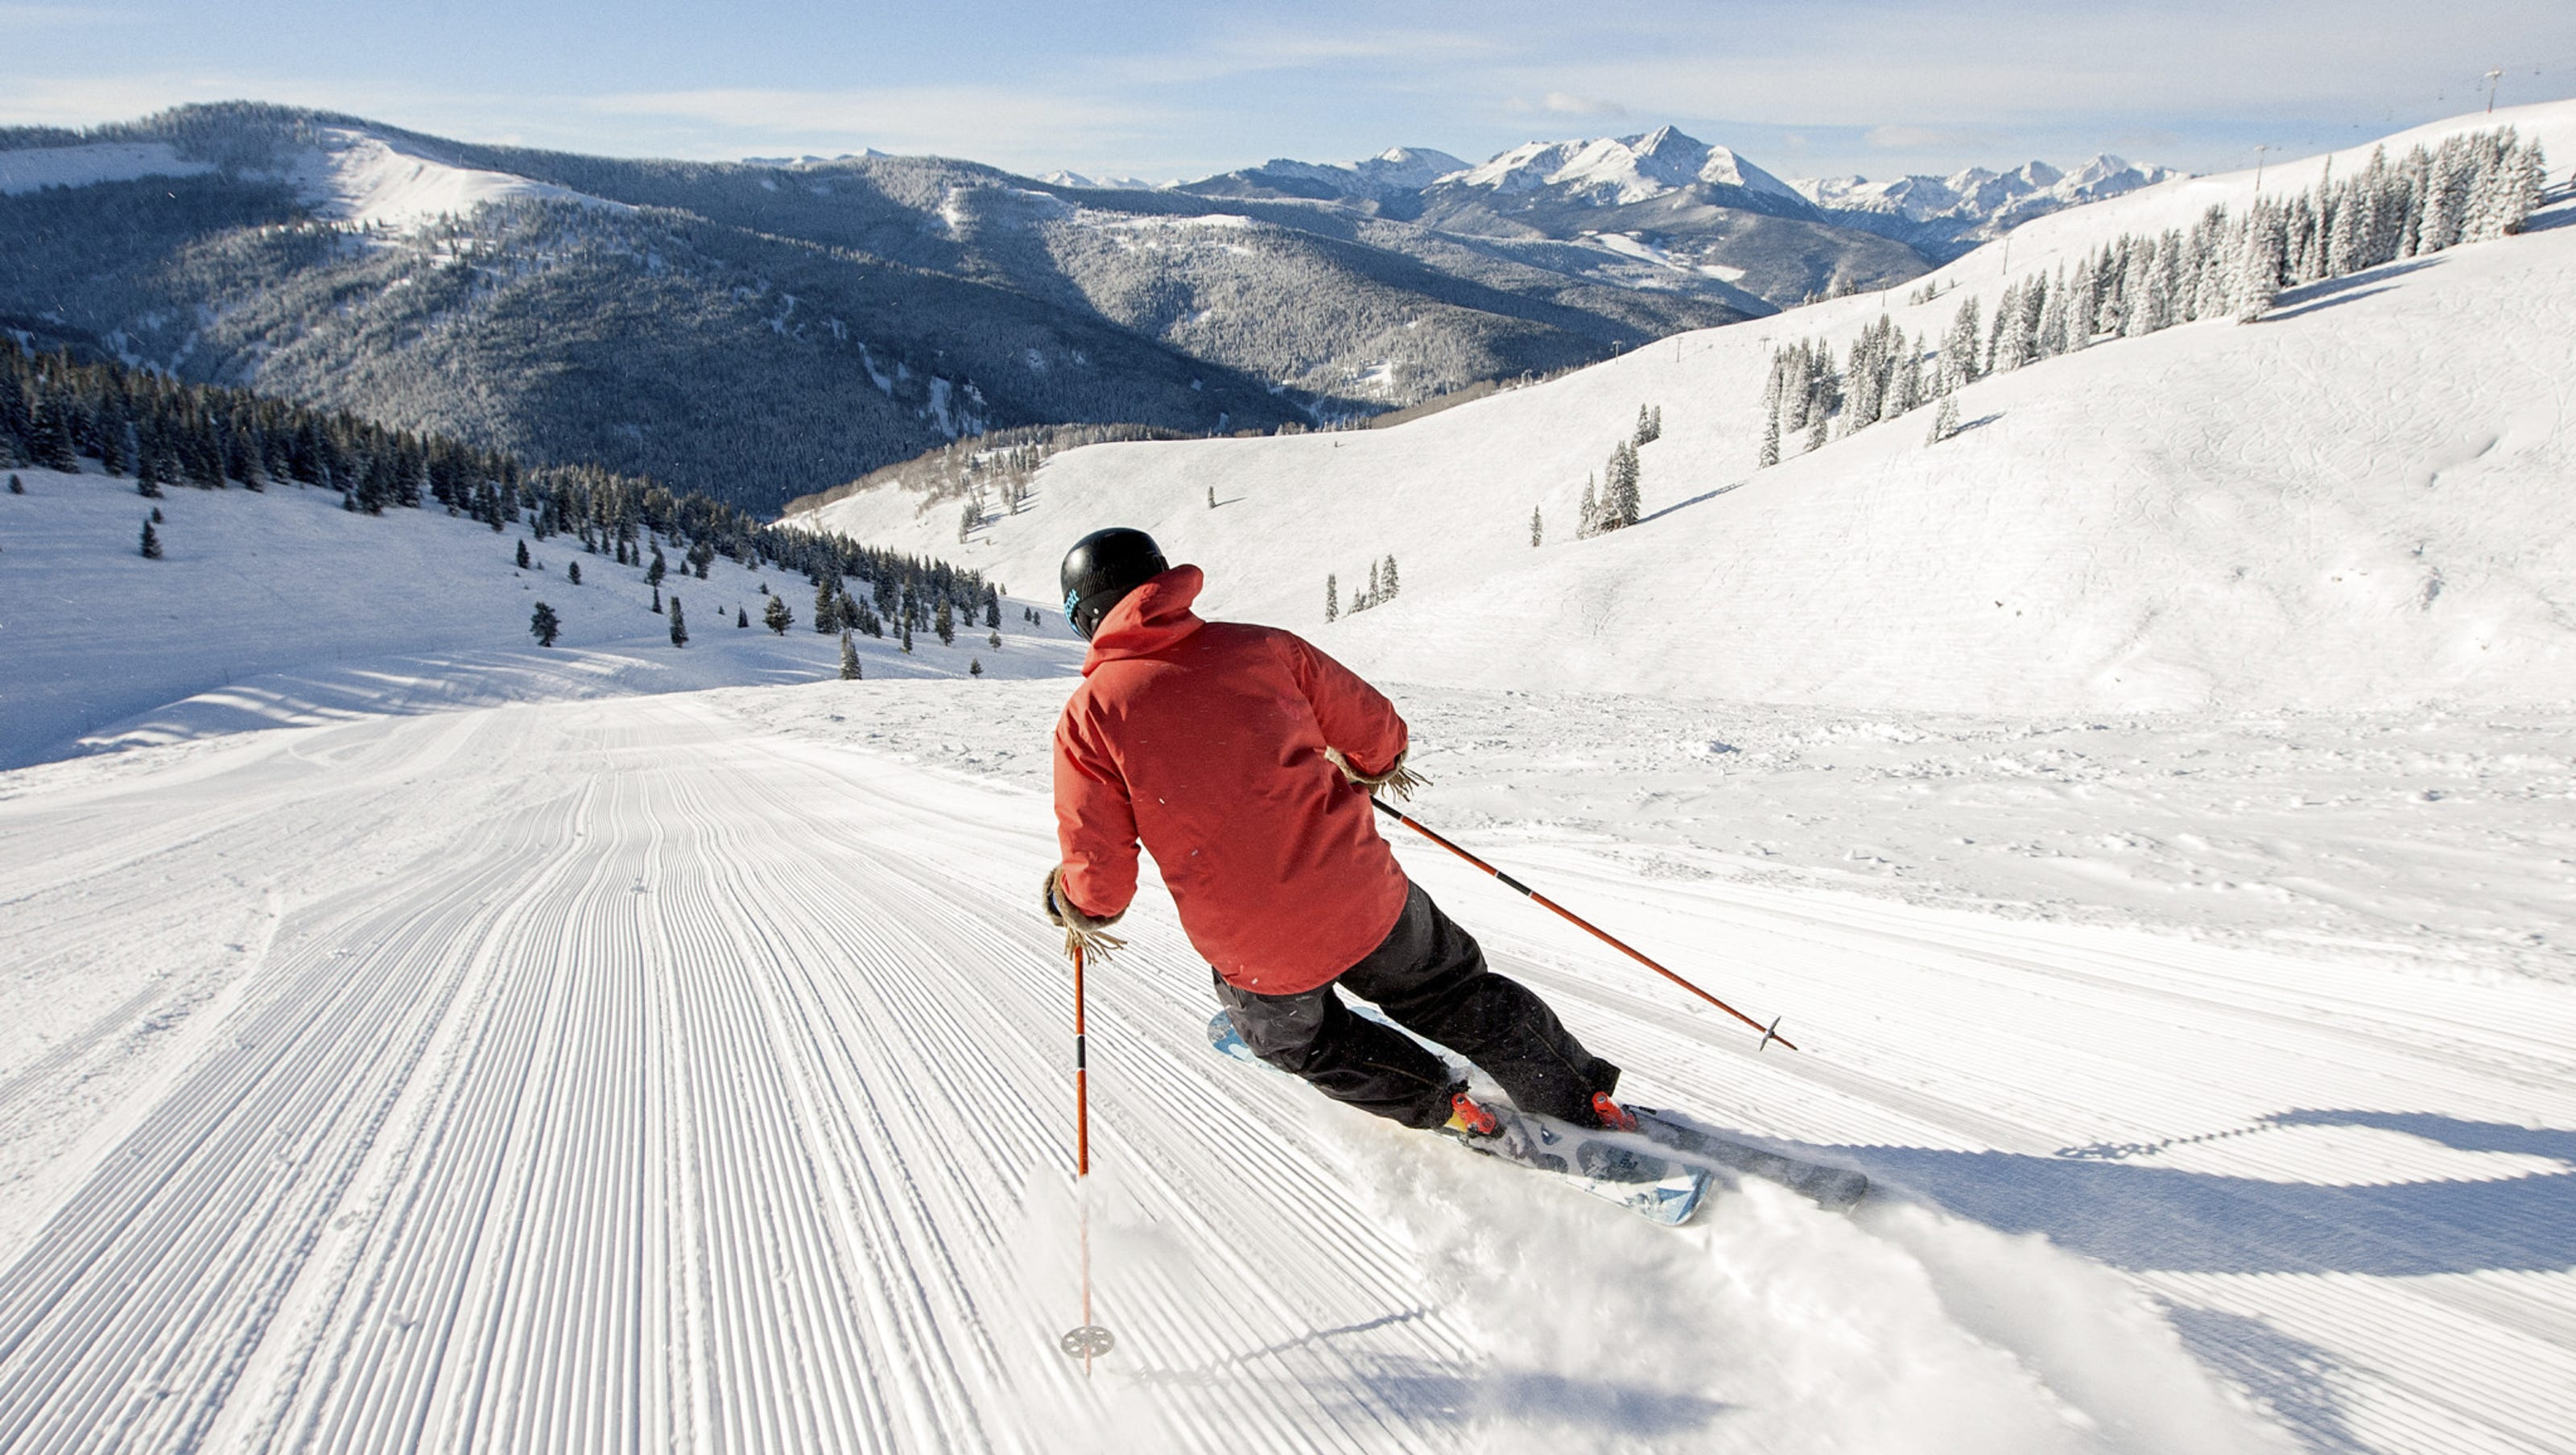 vail's riva ridge: an icon of skiing